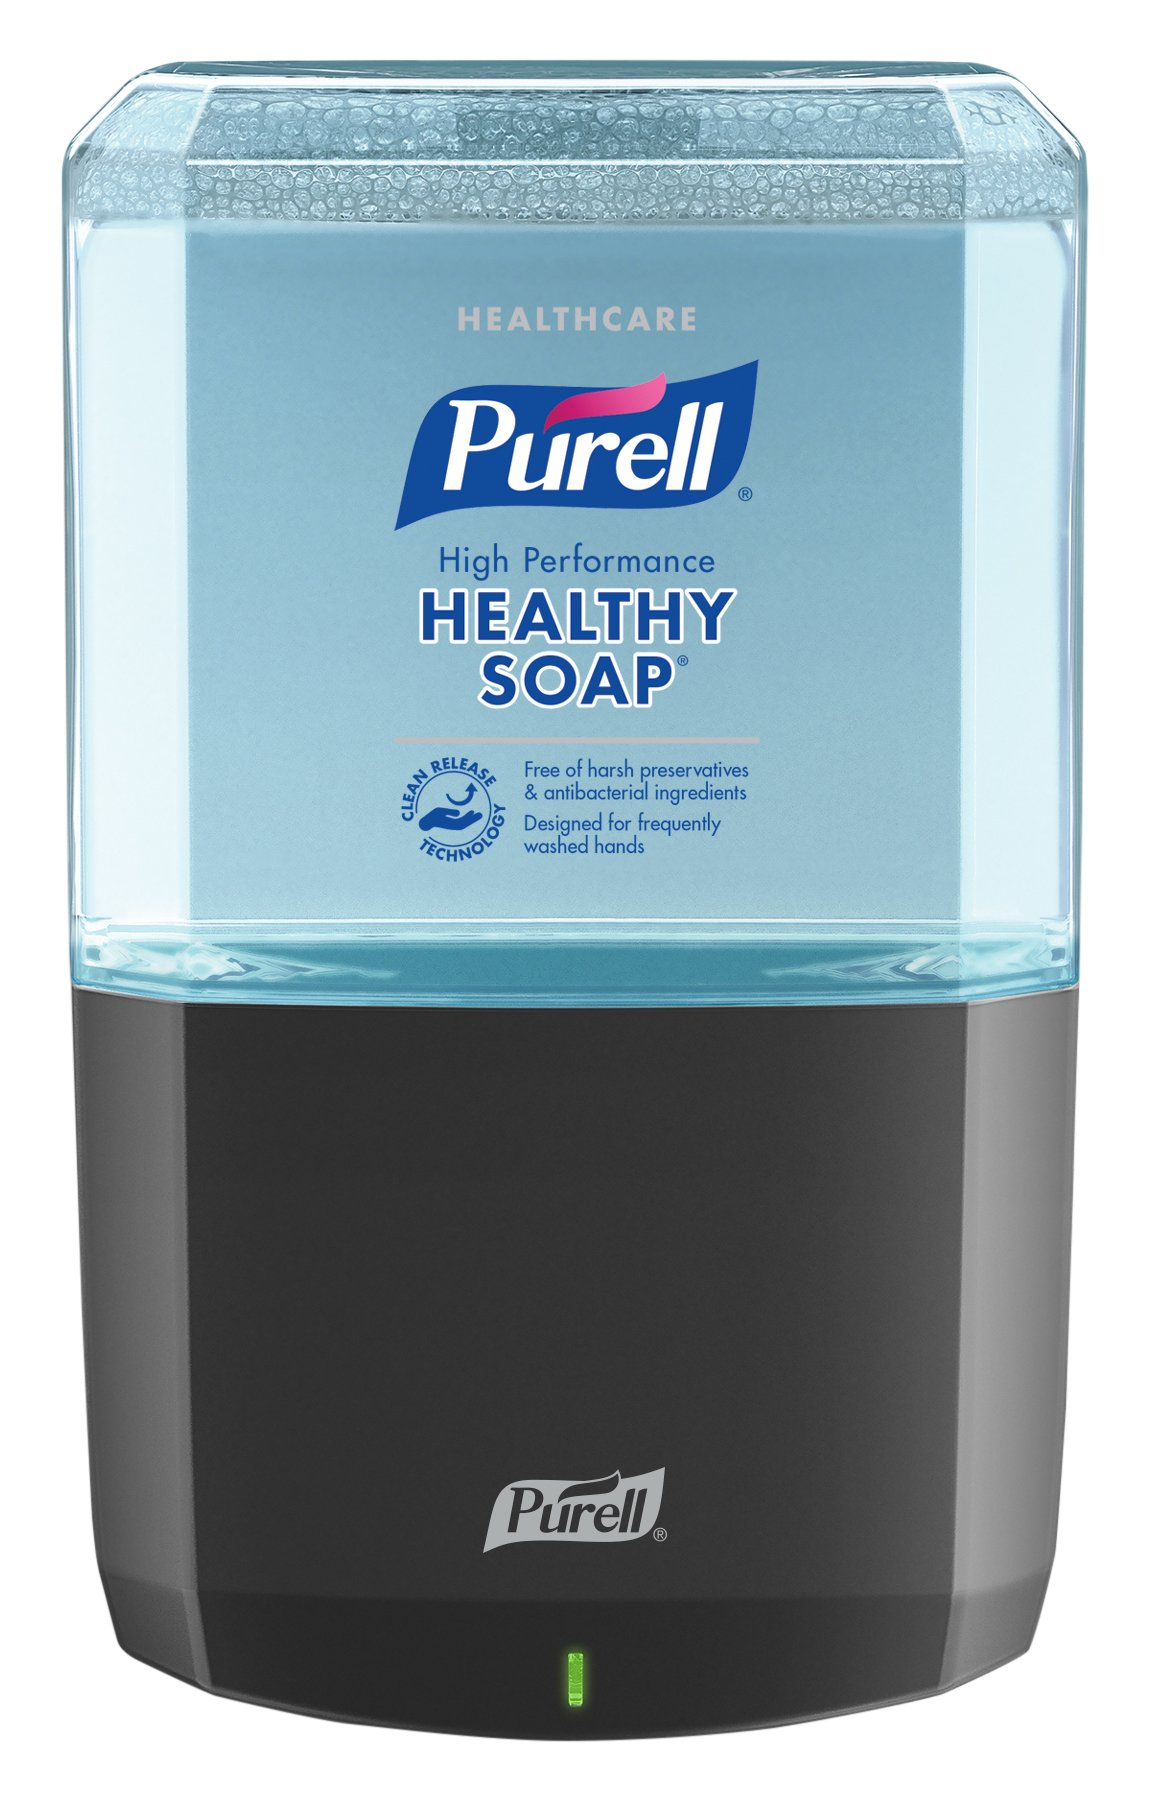 PURELL Healthcare HEALTHY SOAP High Performance Foam, Fragrance Free, ES6 Starter Kit, 1 - 1200 mL EcoLogo Certified Soap Refill + 1 -  ES6 Graphite Touch-Free Dispenser - 6485-1G